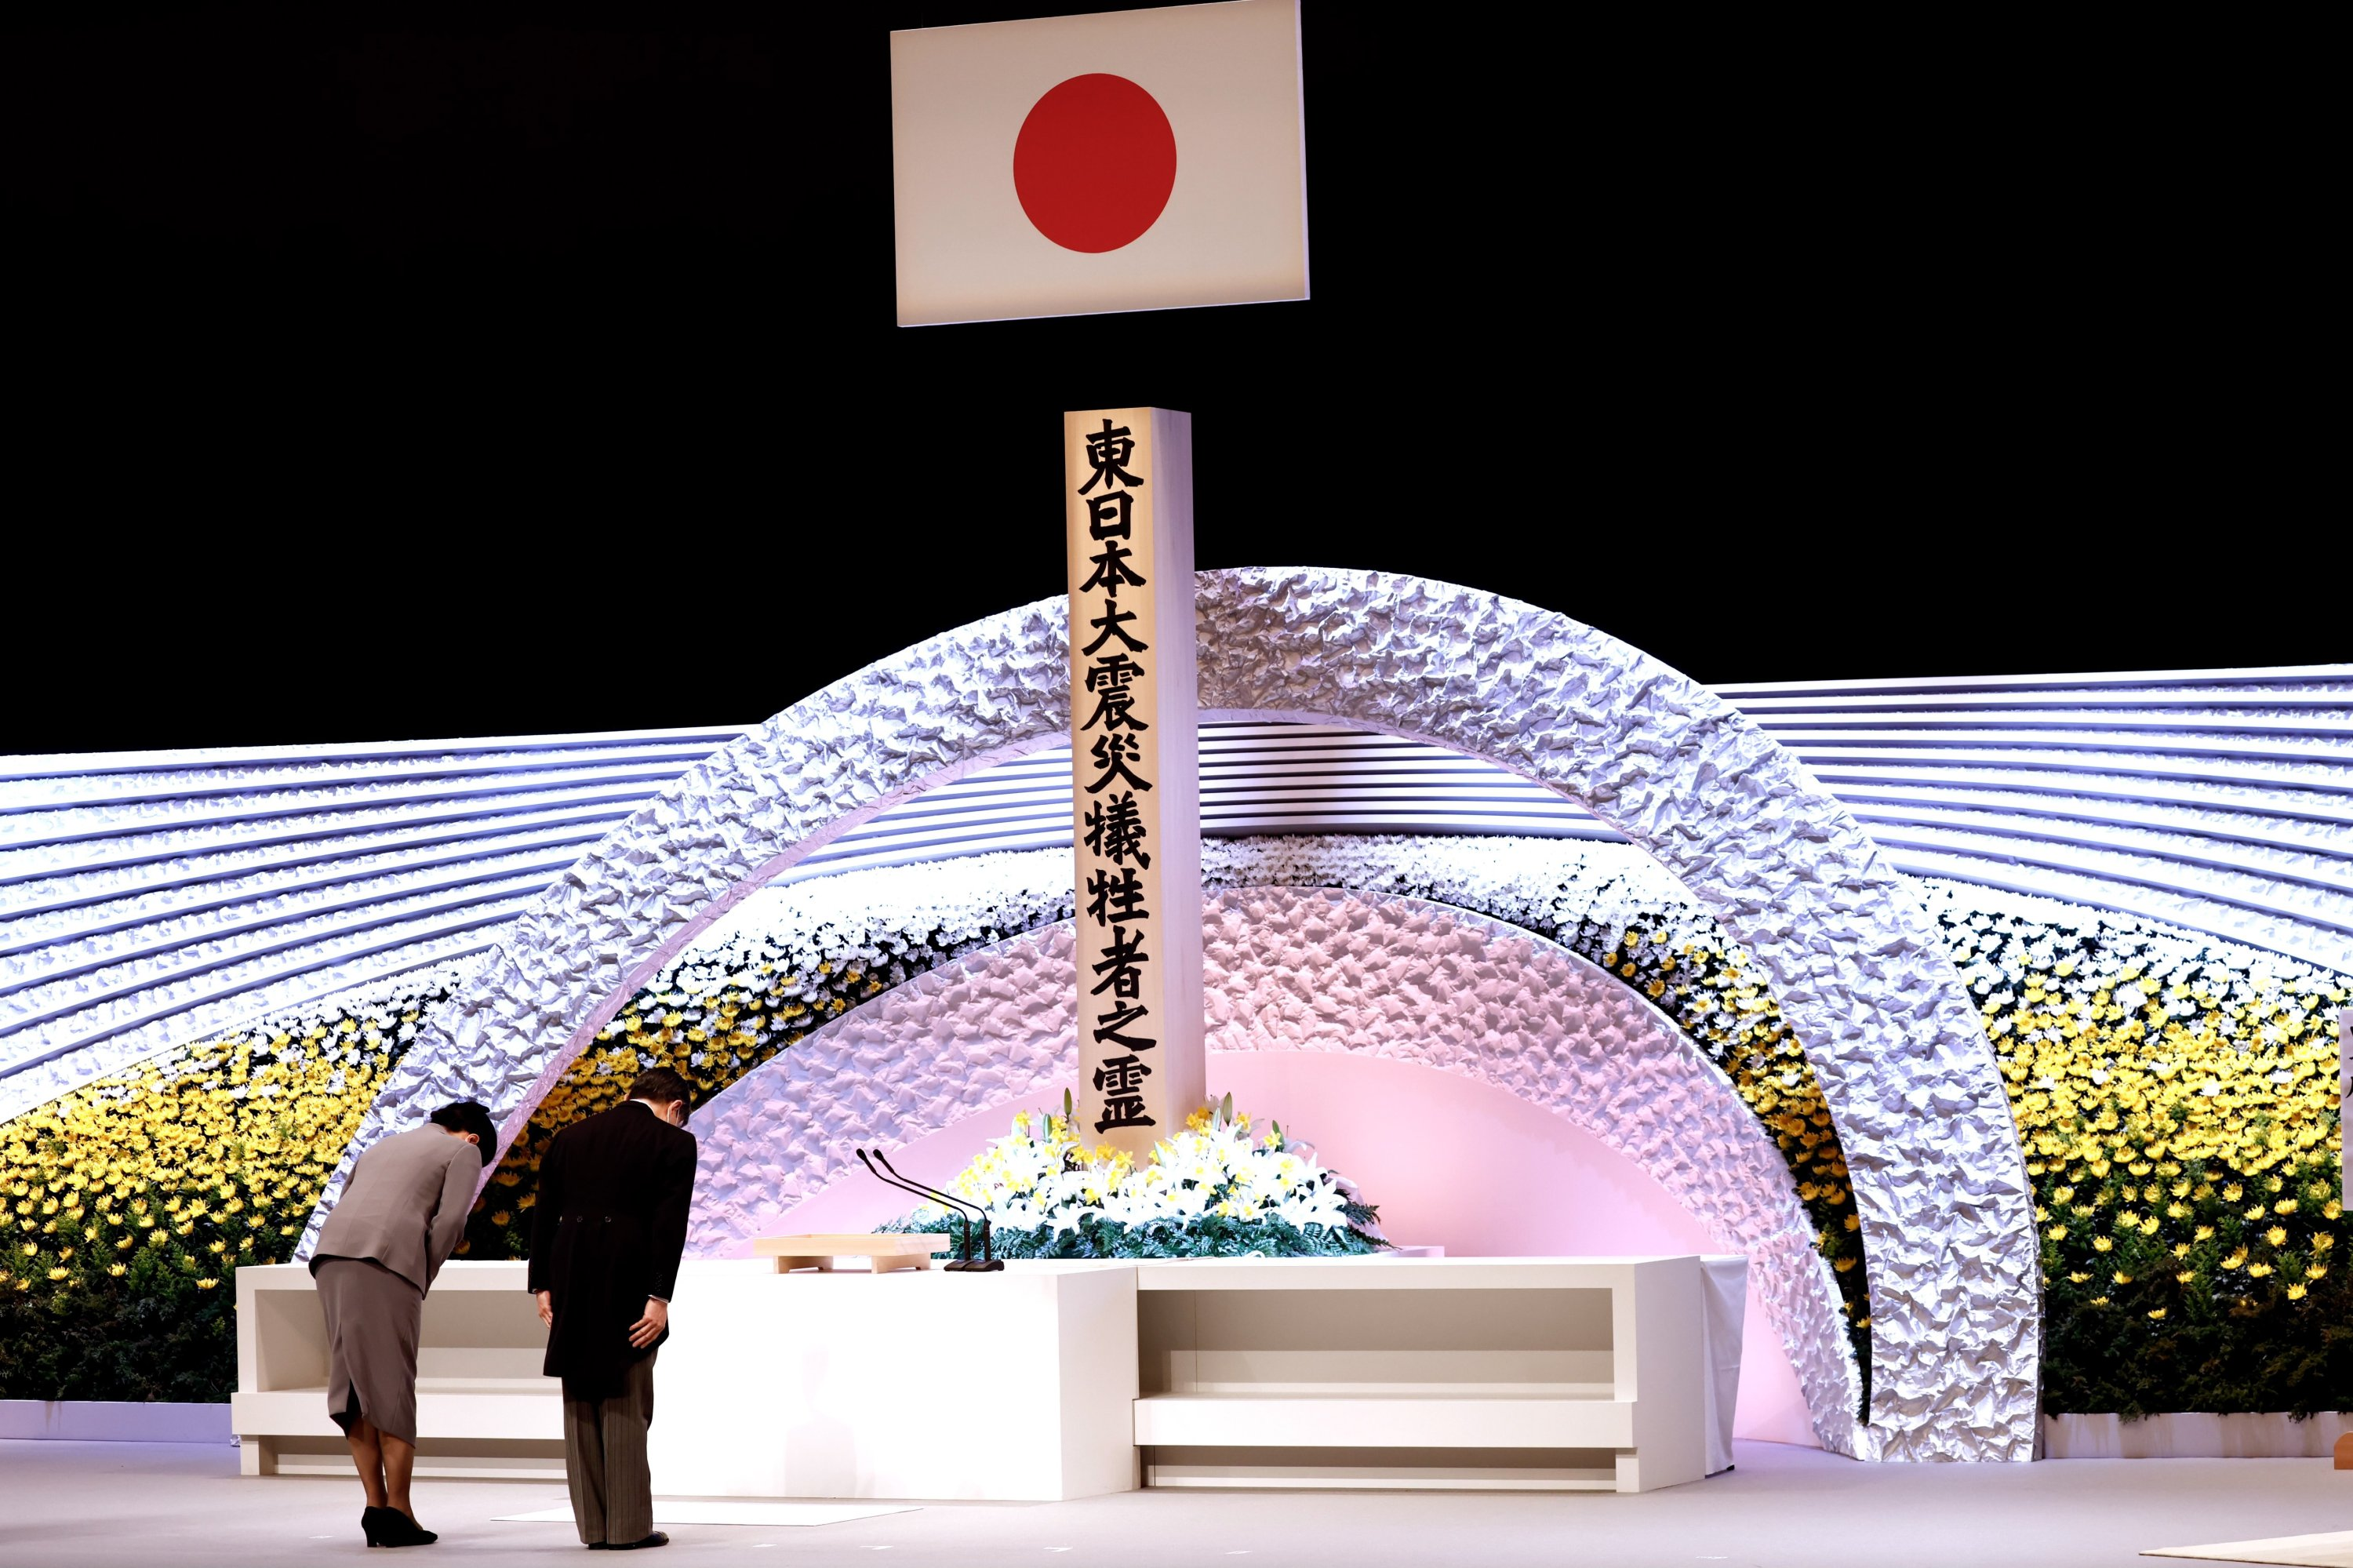 Japan's Emperor Naruhito (R) and Empress Masako (L) bow in front of the altar for victims of the March 11, 2011 earthquake and tsunami at the national memorial service in Tokyo, Japan, March 11, 2021. (EPA)